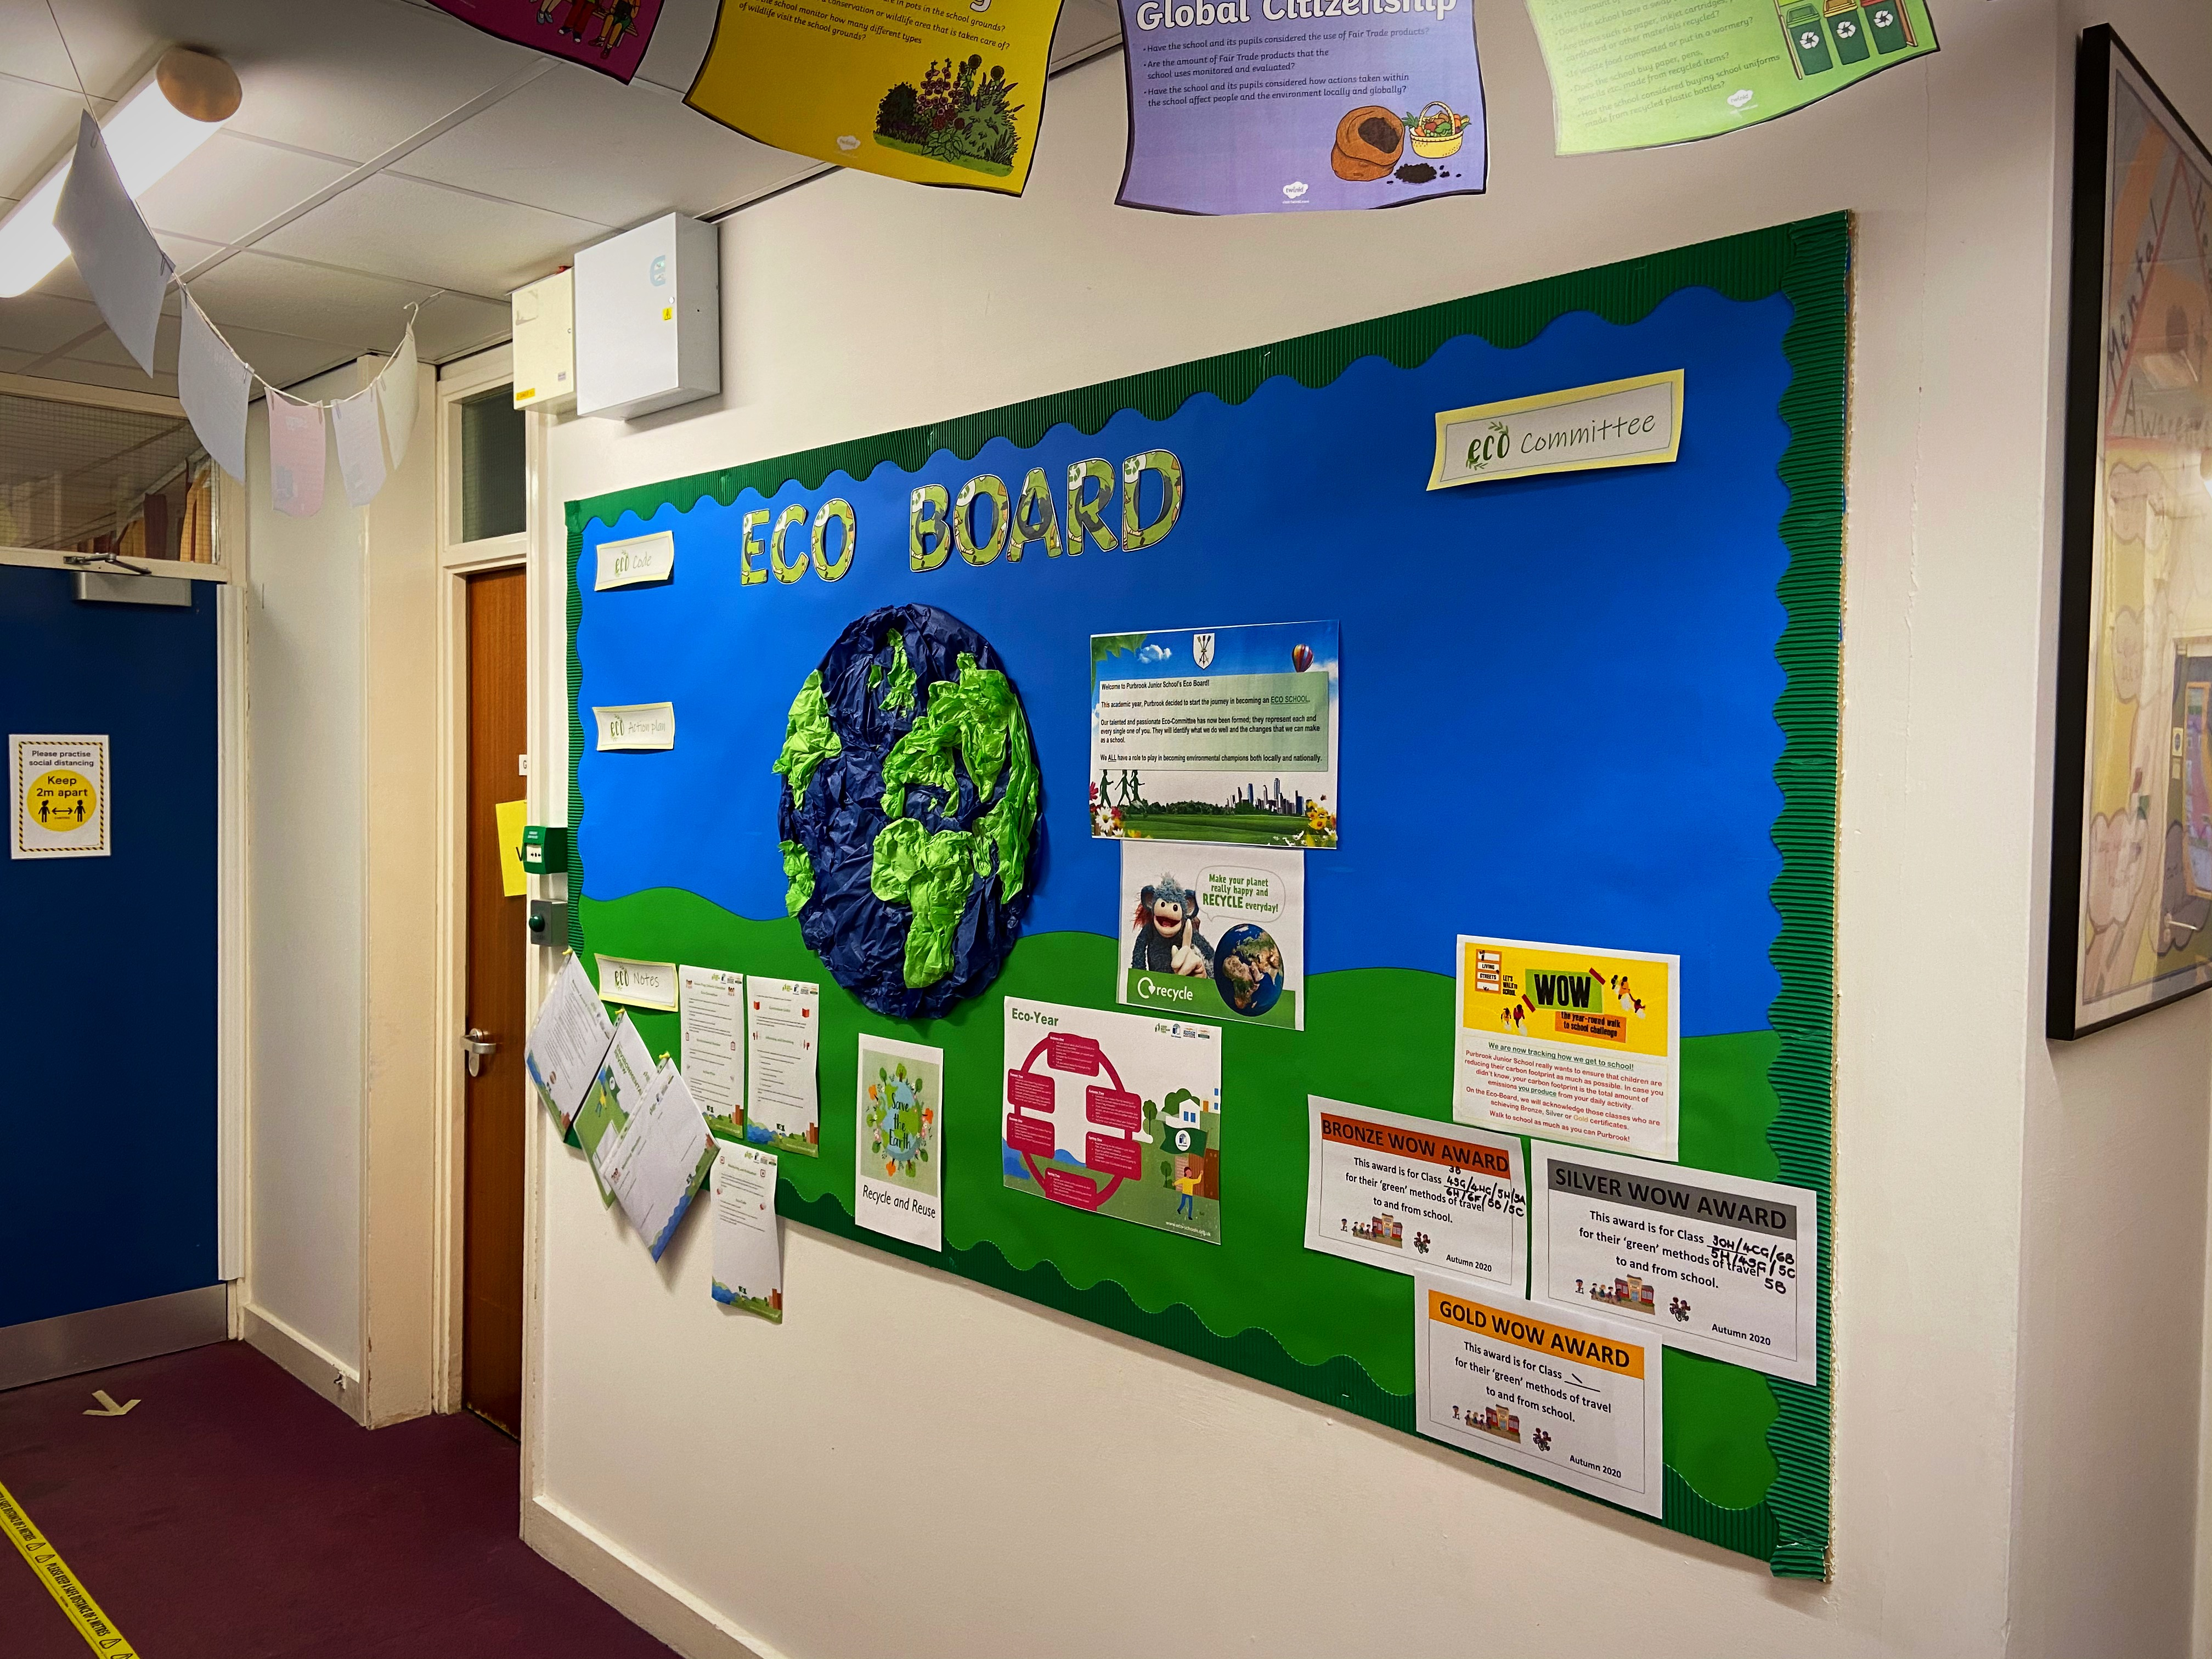 An Eco-Board has been created to display all things environment related.